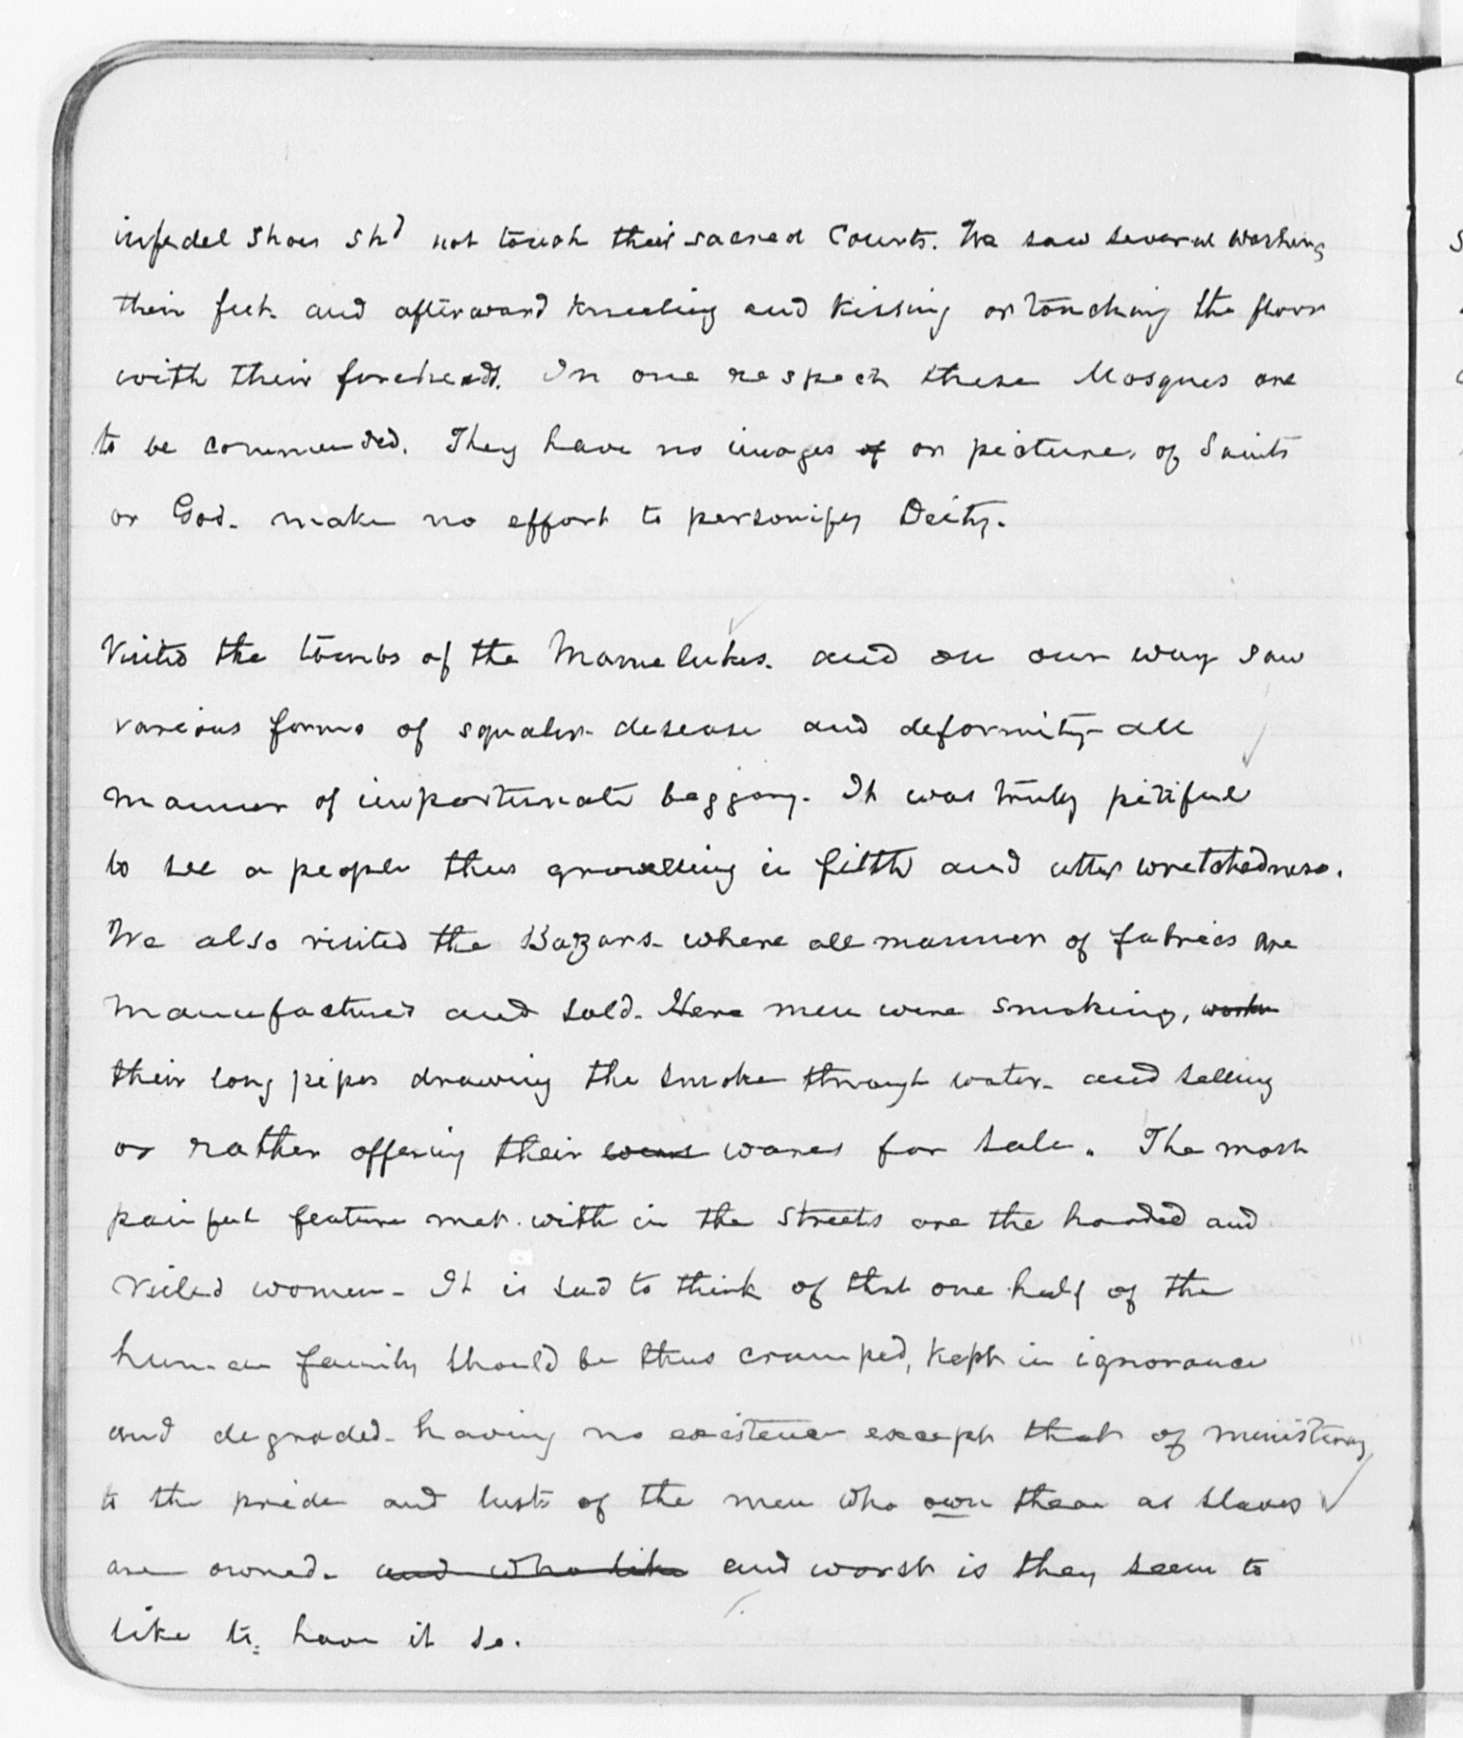 Figure 6. Fully transcribed and proofread text from page 42 of Frederick Douglass'diary.